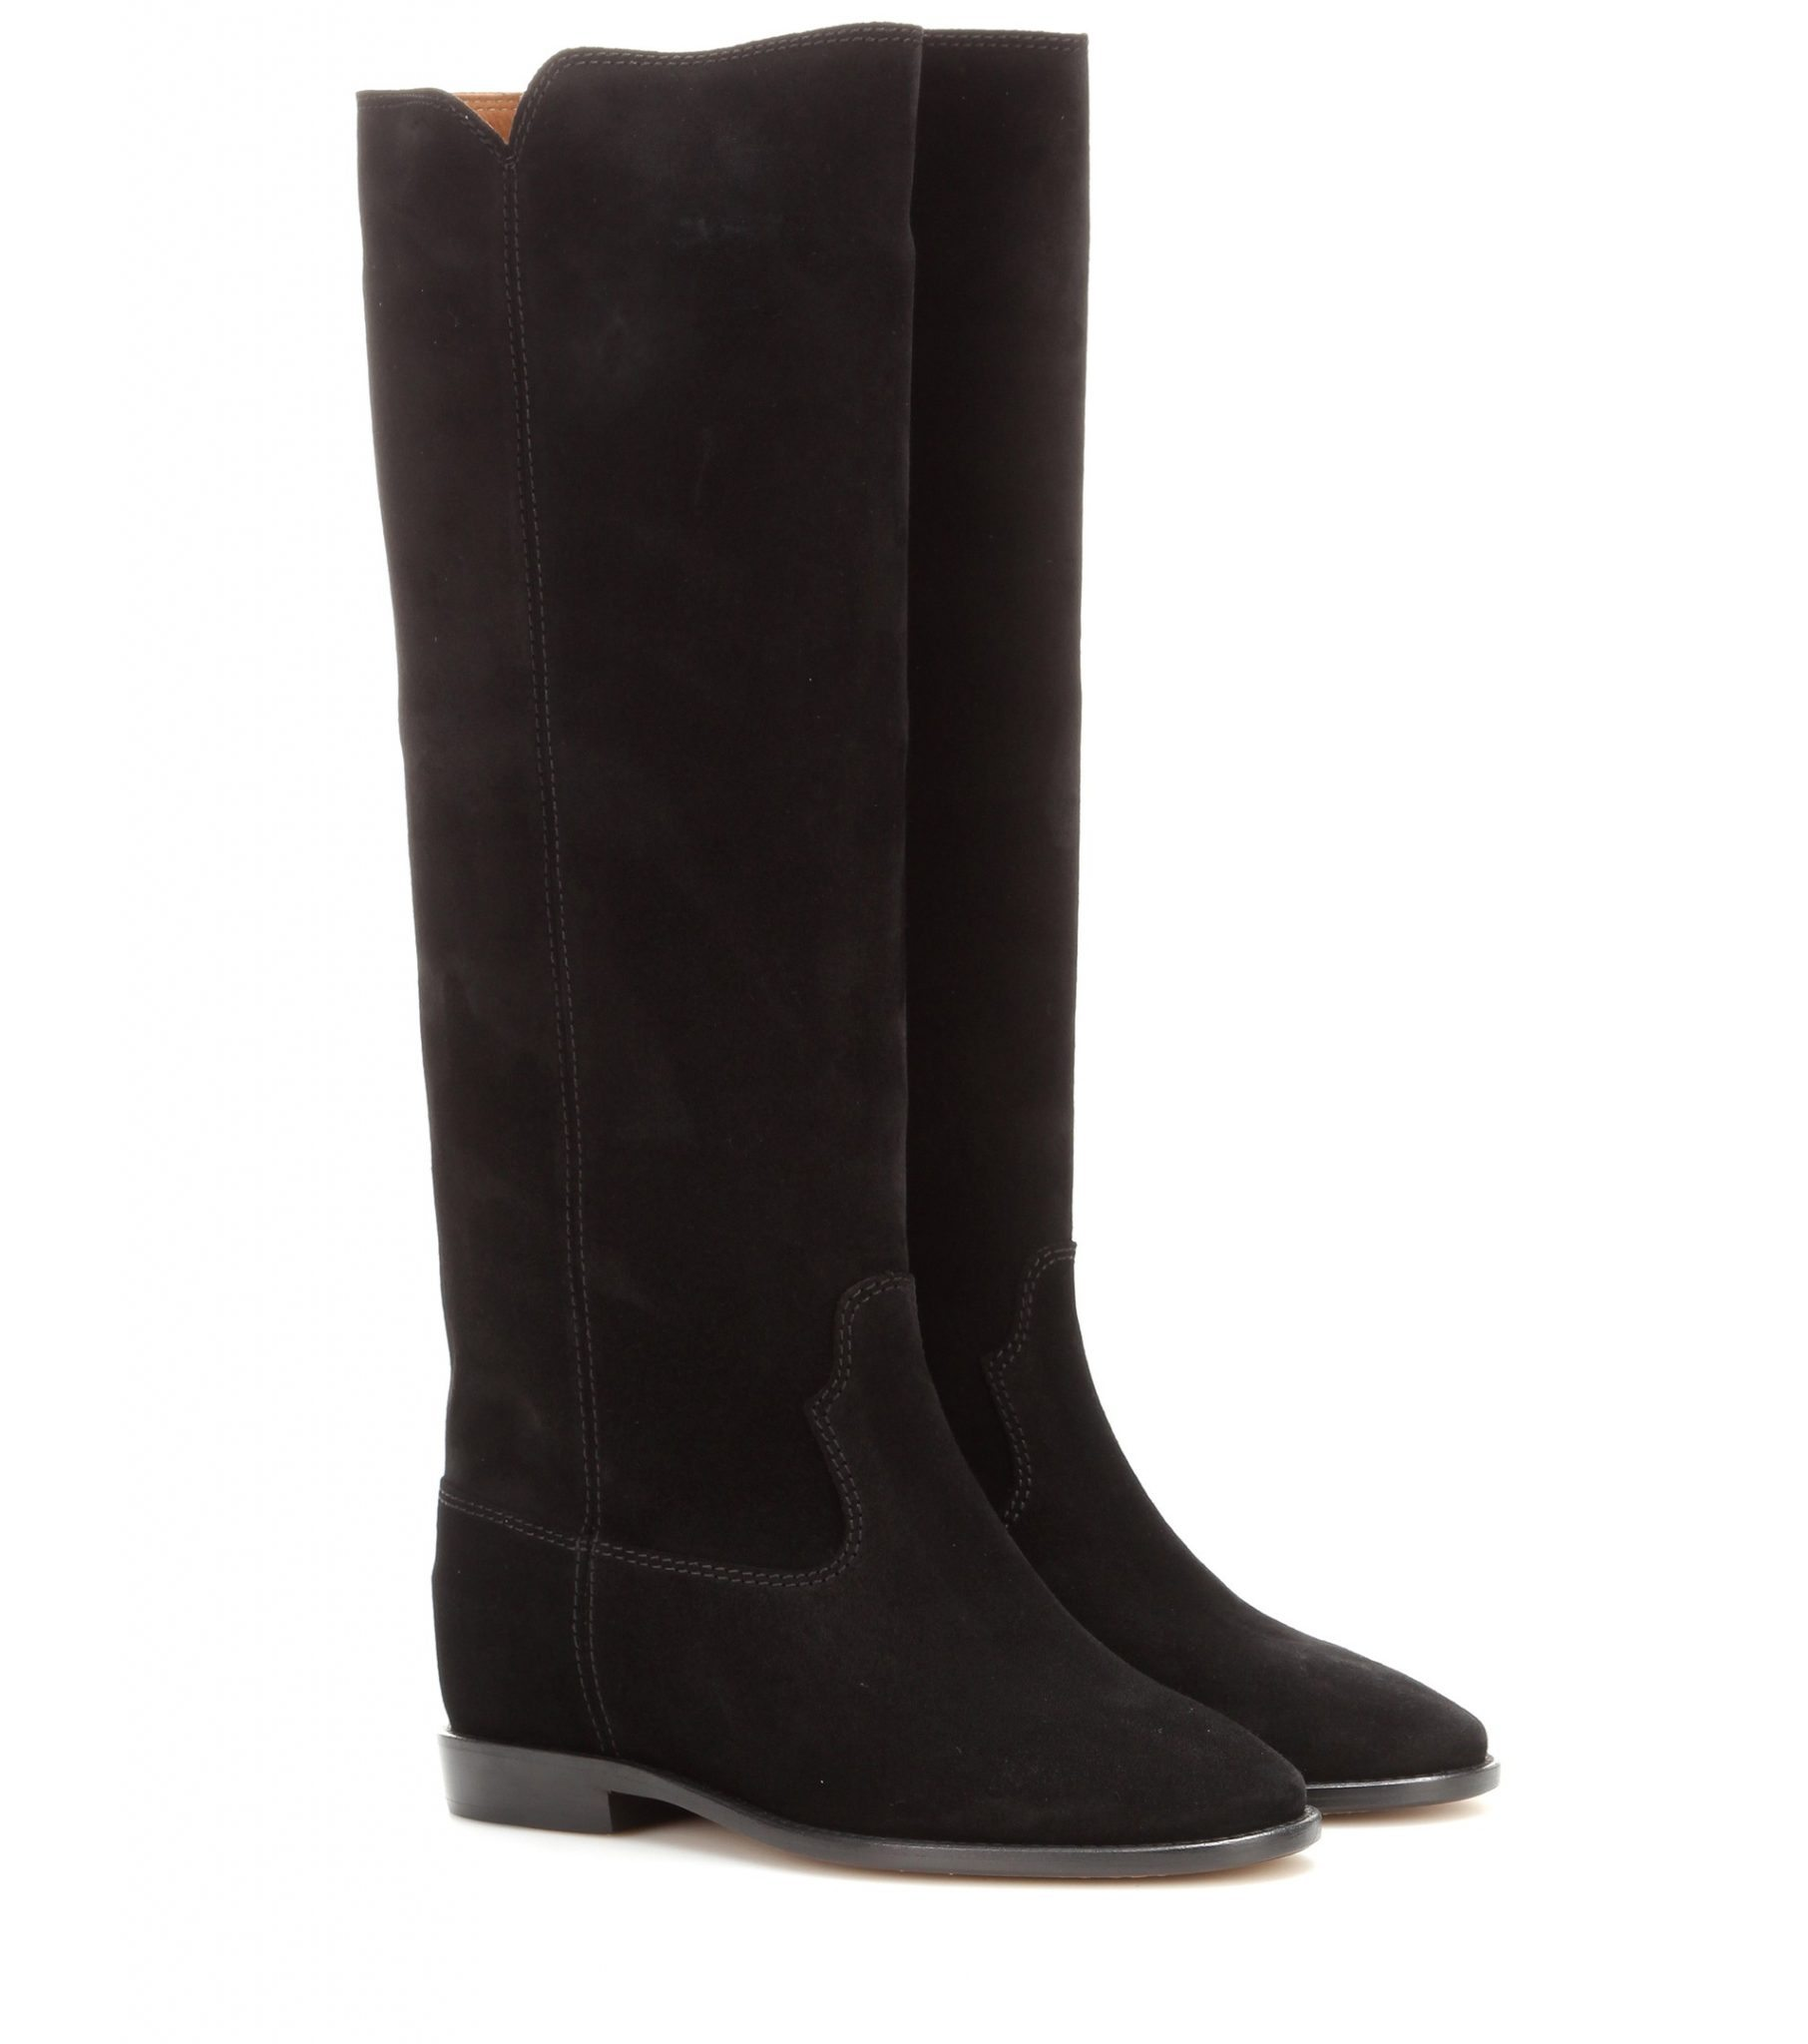 isabel marant knee high